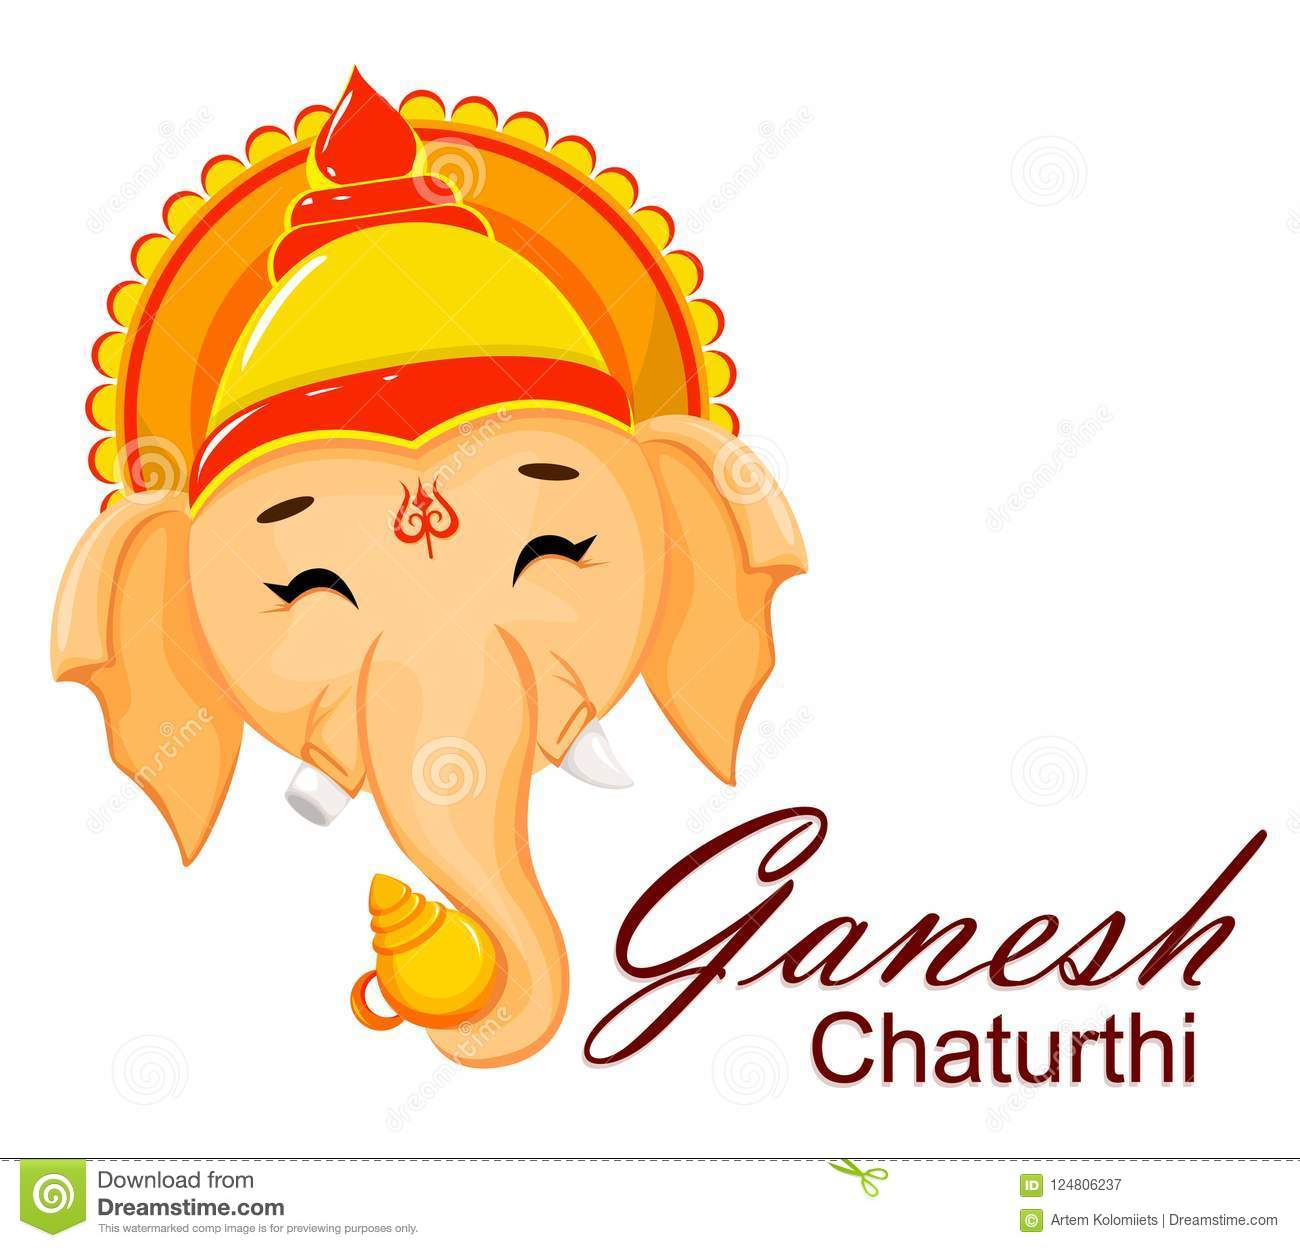 Happy ganesh chaturthi greeting card stock vector illustration of download happy ganesh chaturthi greeting card stock vector illustration of blessing illustration 124806237 m4hsunfo